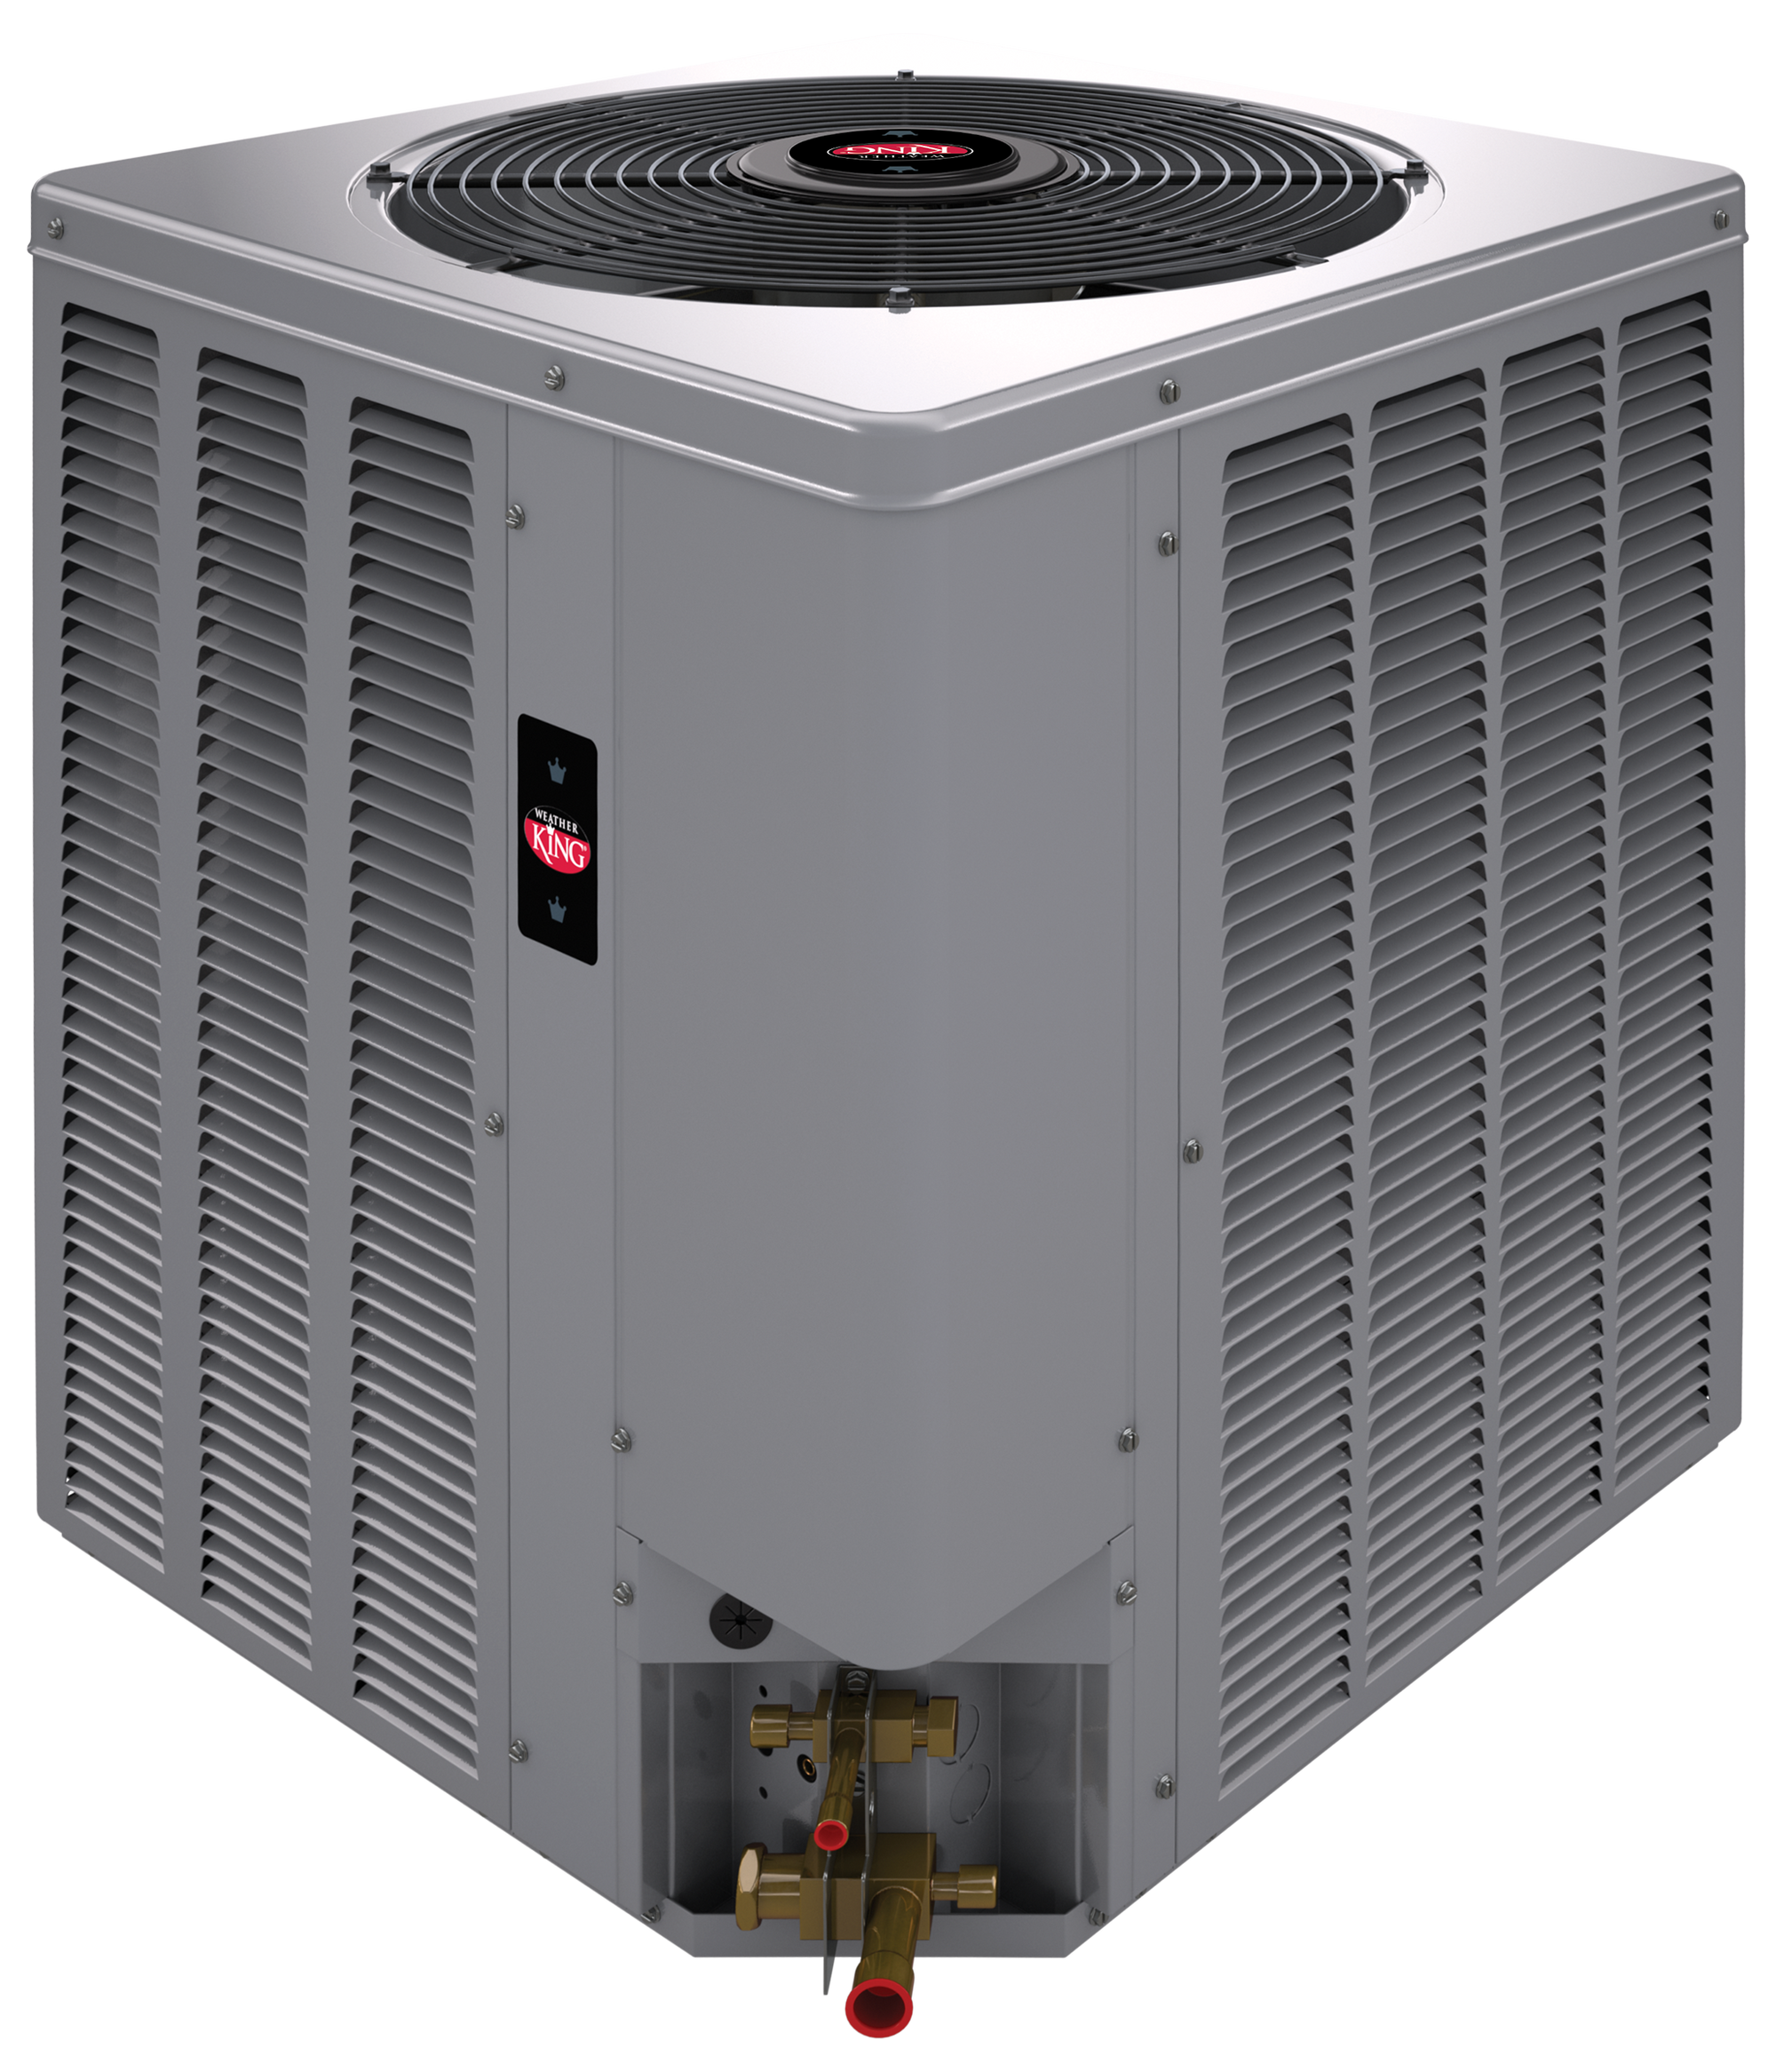 WEATHER KING BY RHEEM® 5 TON 14 SEER A/C SPLIT SYSTEM (AC, GAS FURN , COIL)